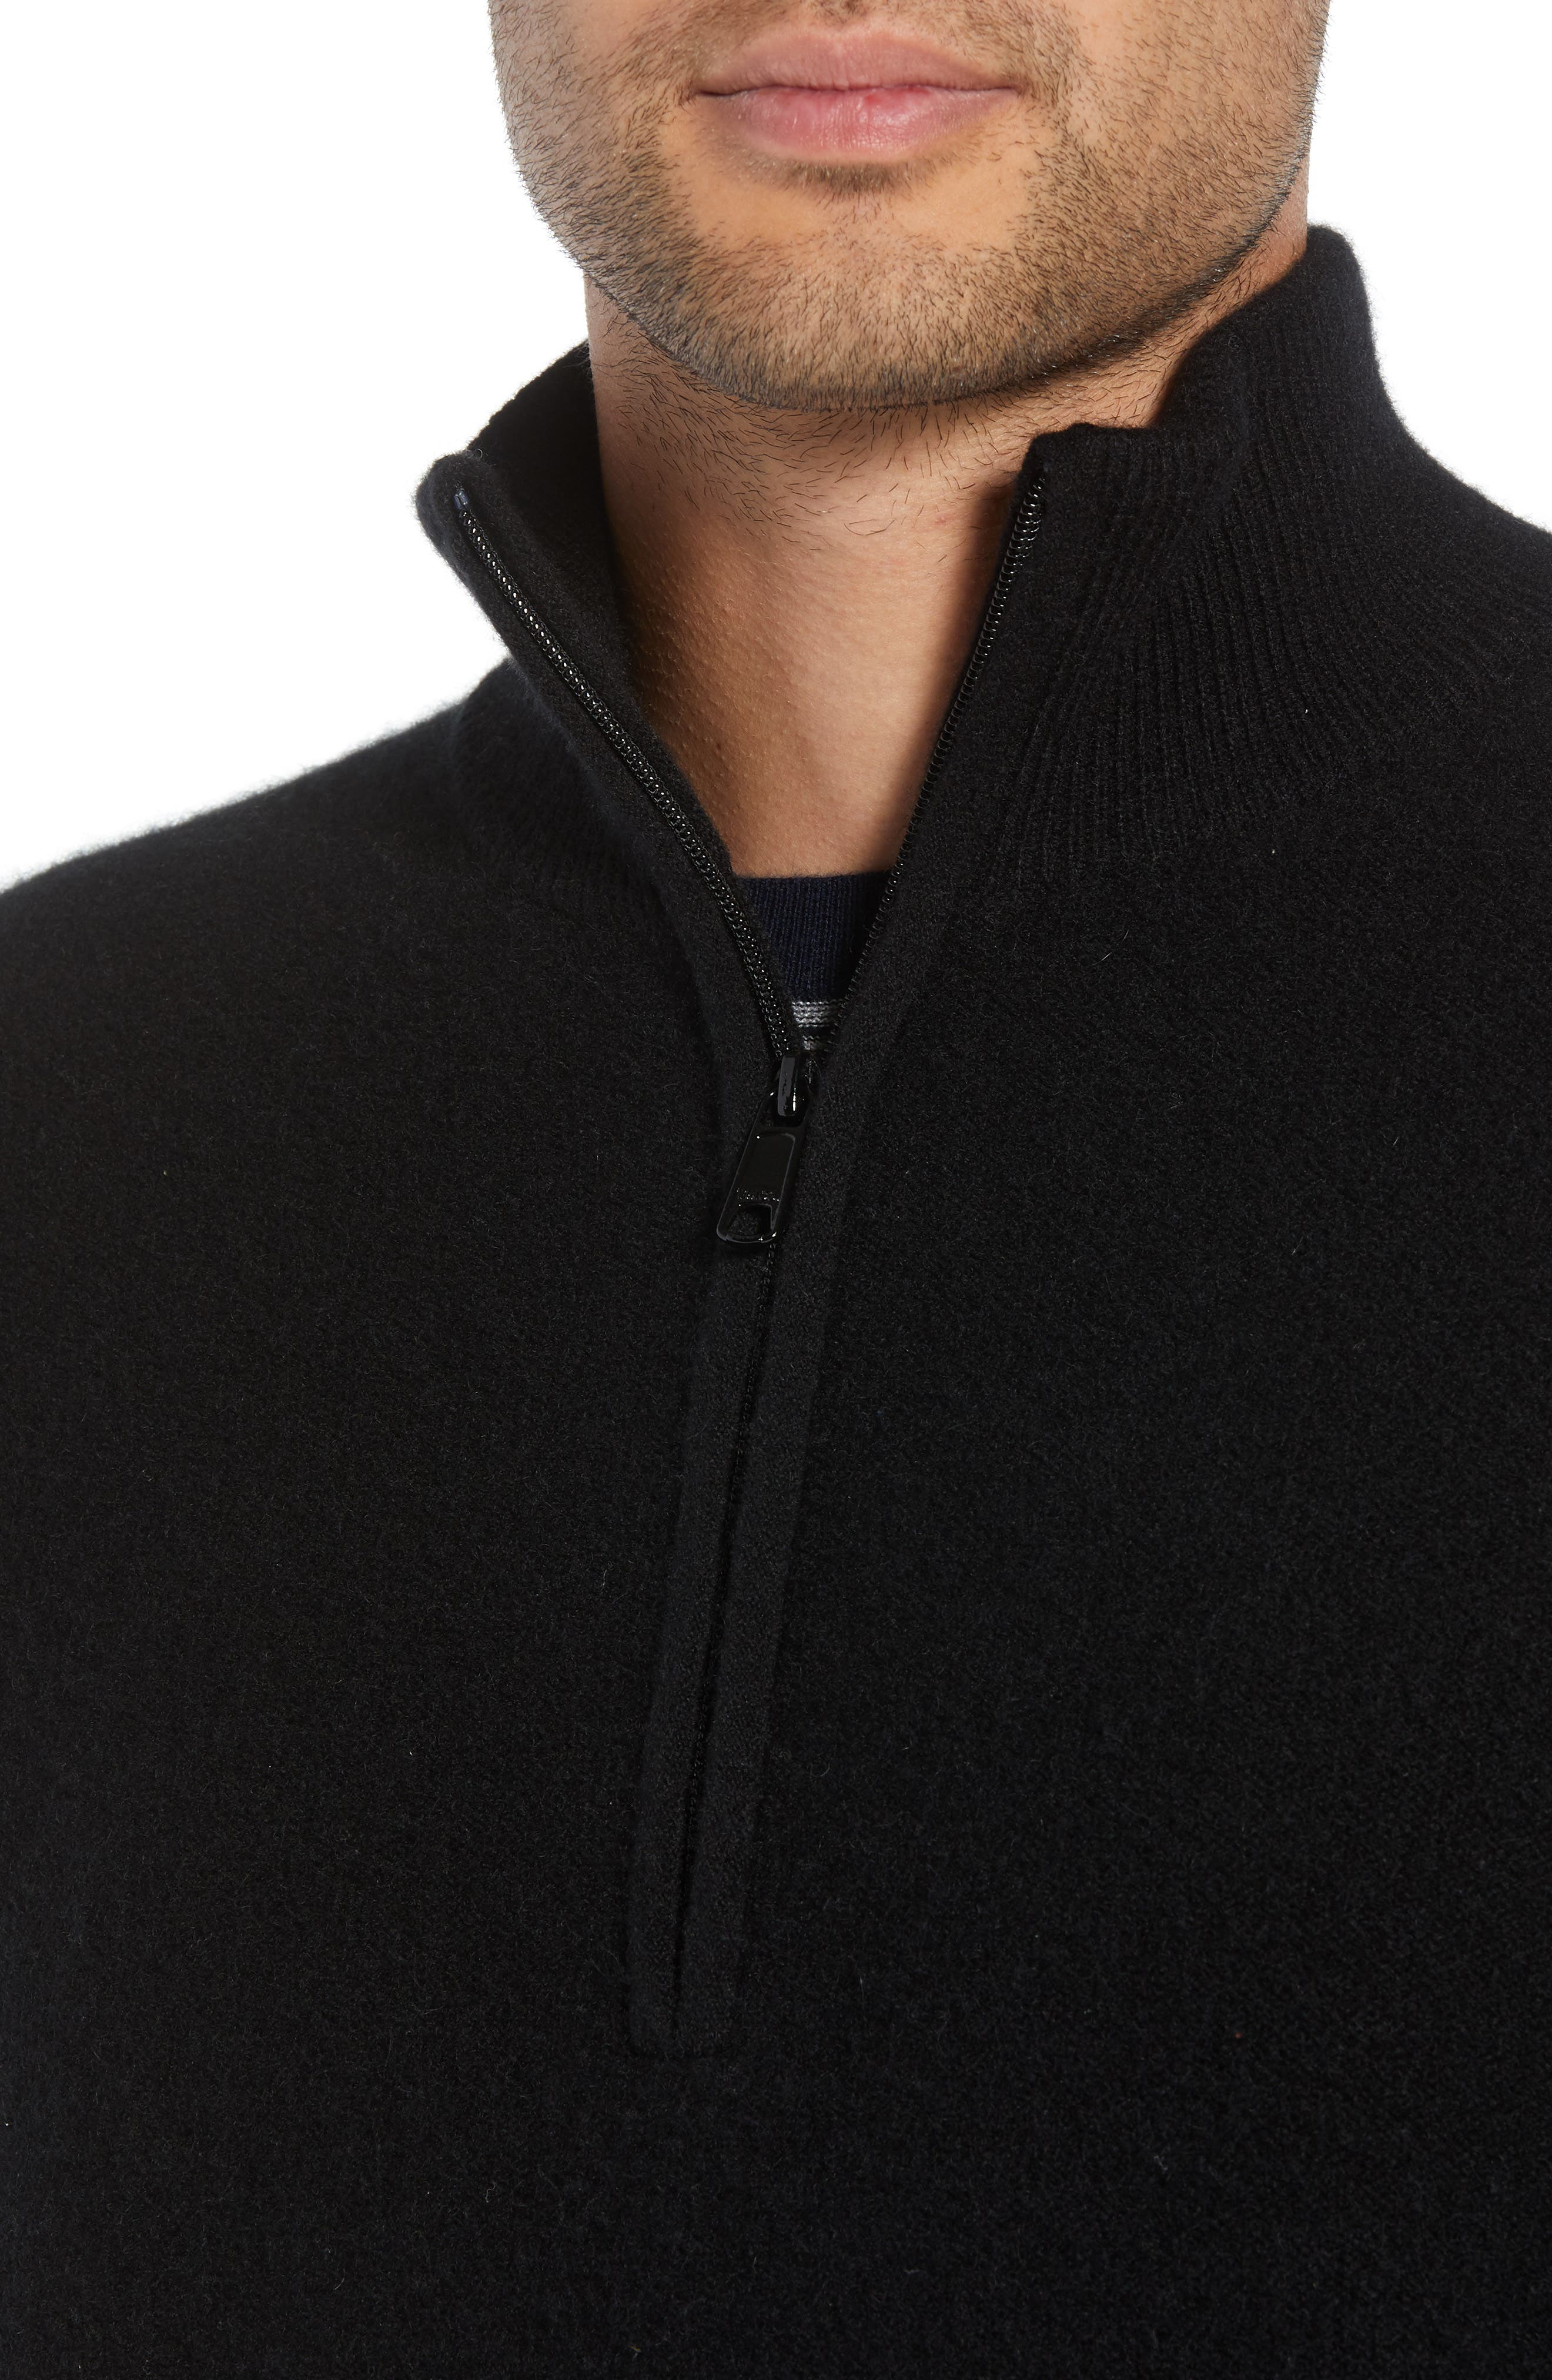 Regular Fit Half Zip Cashmere Sweater,                             Alternate thumbnail 4, color,                             001